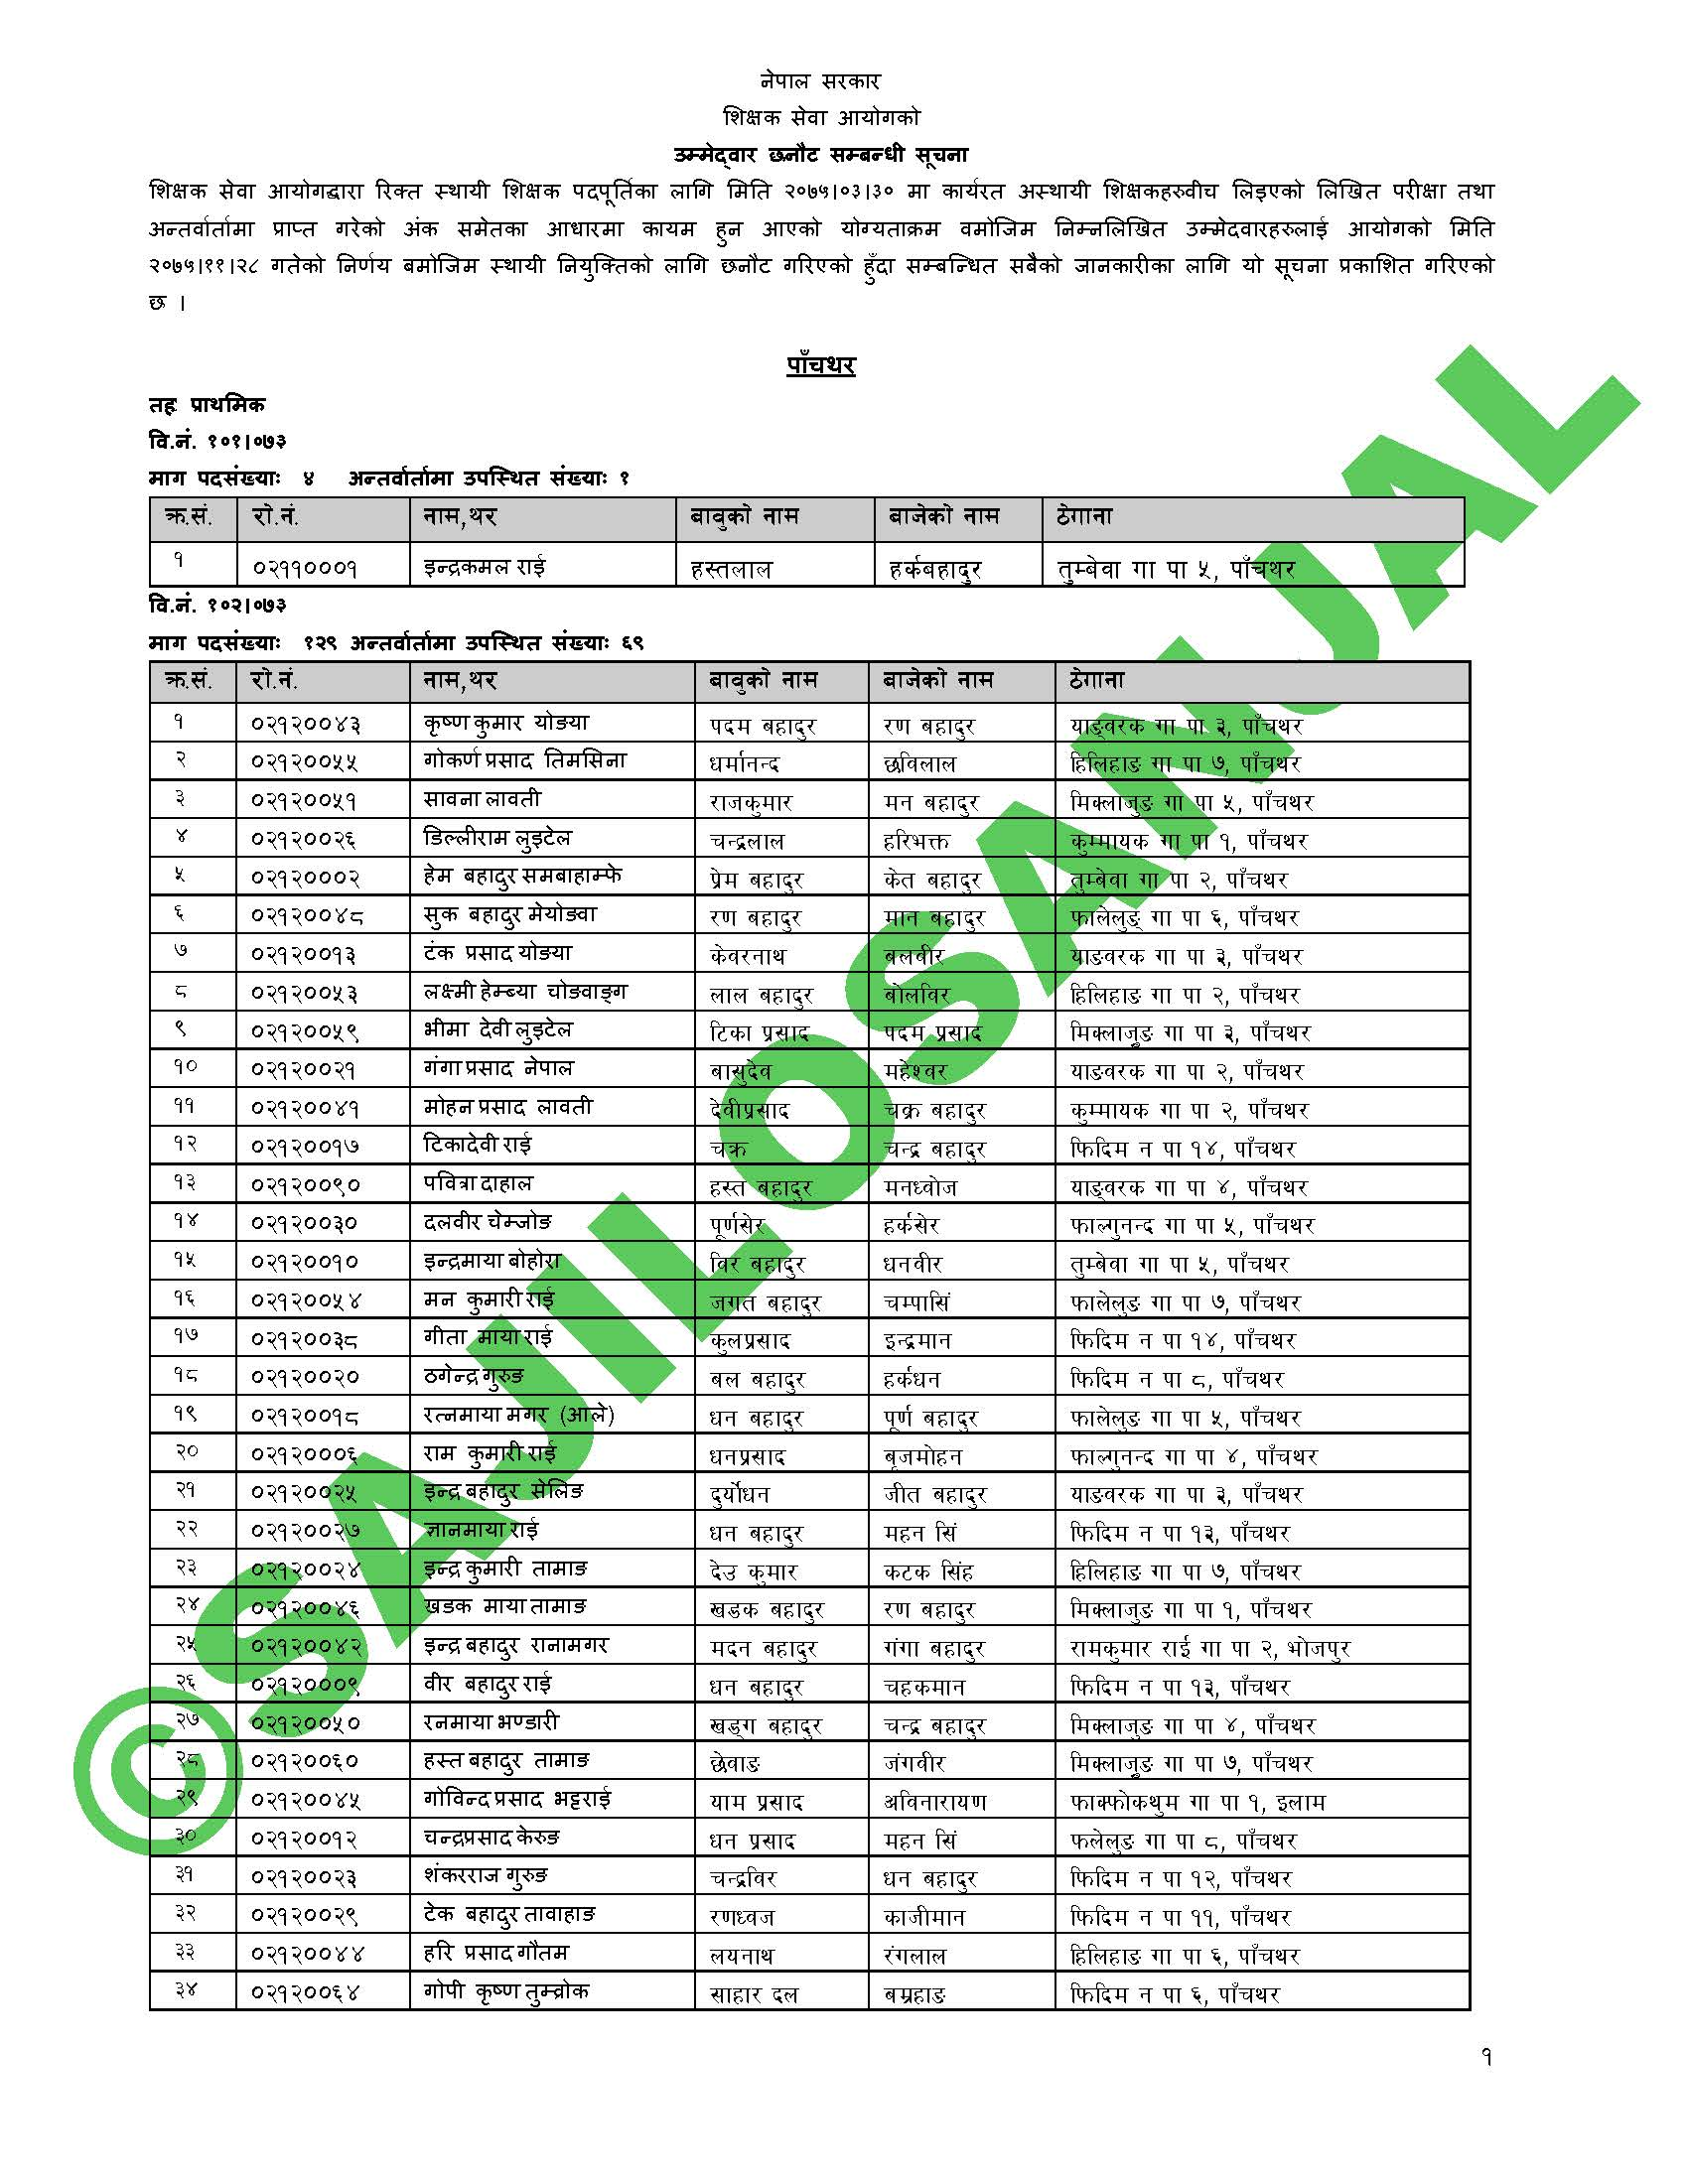 Primary exam result,  Shikshak Sewa Aayog Primary Level Exam Result,    Primary Level Exam Result,    TSC Primary Level Exam Result,   TSC Primary Exam Result,   Shikshak Sewa Aayog Exam Result,   Shikshak Sewa Aayog Primary Exam Result,   प्राथमिक तह,   प्रथमिक तह नतिजा,   नतिजा,tsc exam result